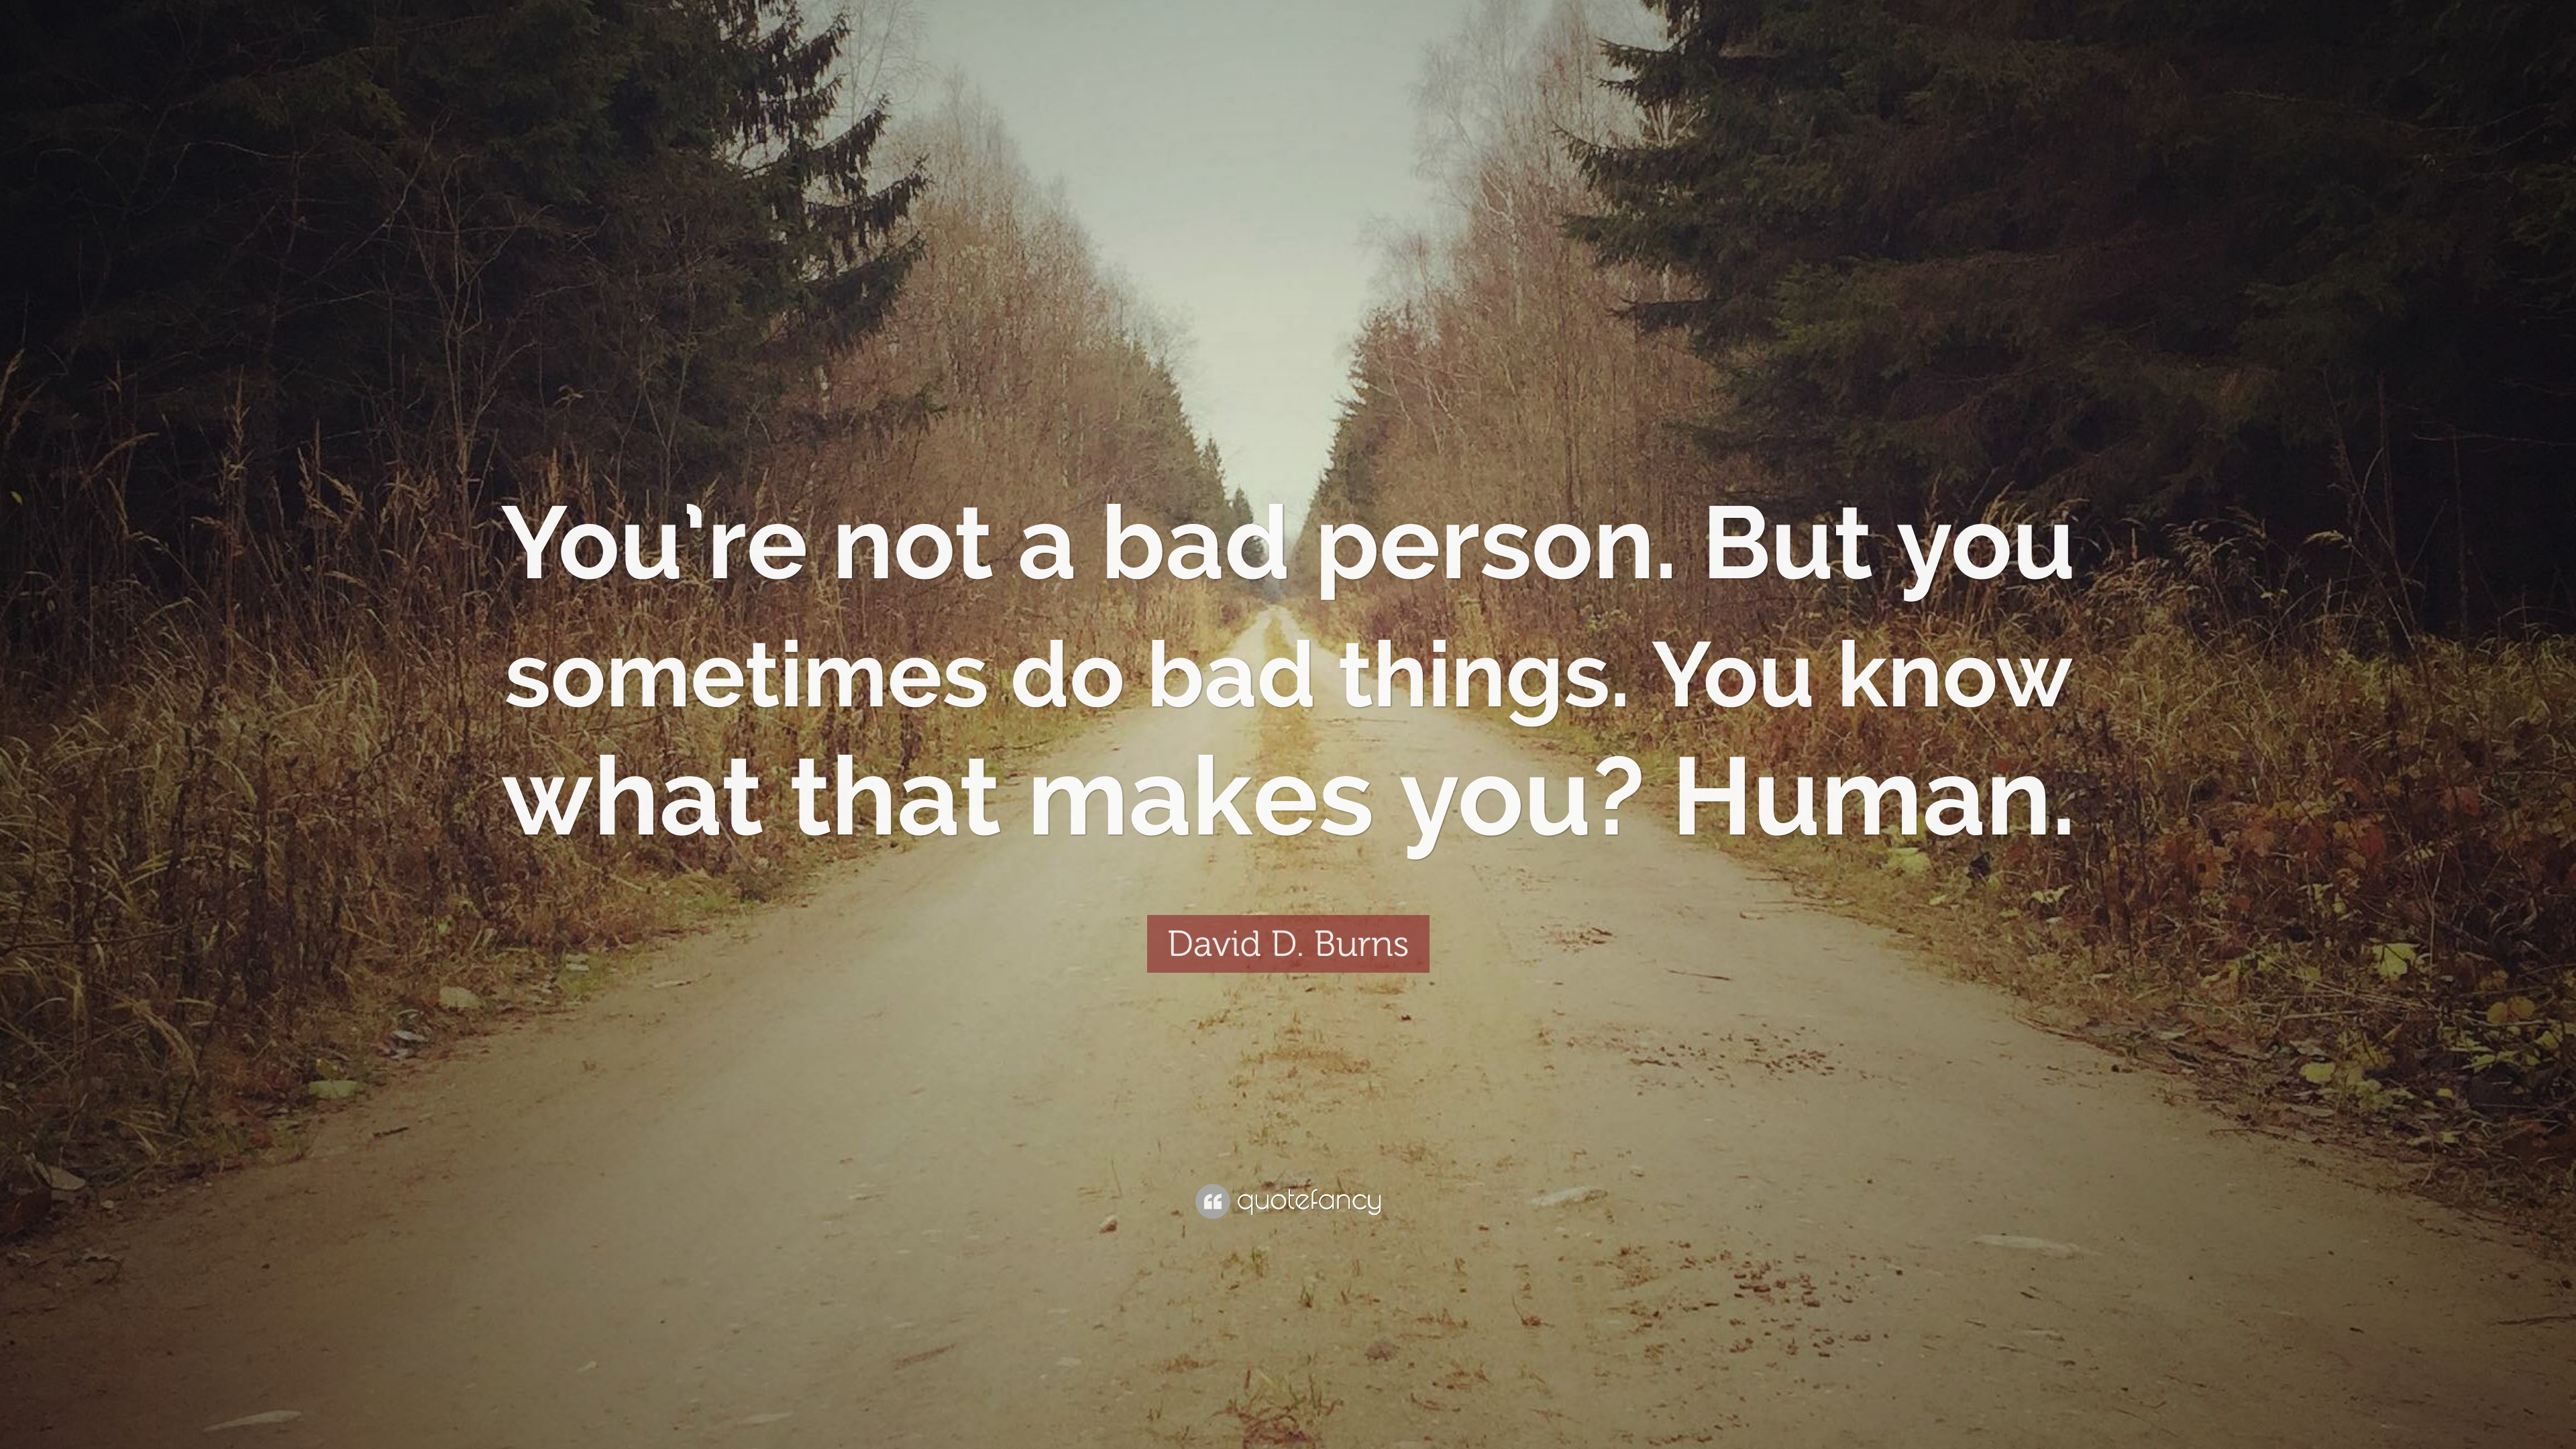 David D Burns Quote Youre Not A Bad Person But You Sometimes Do